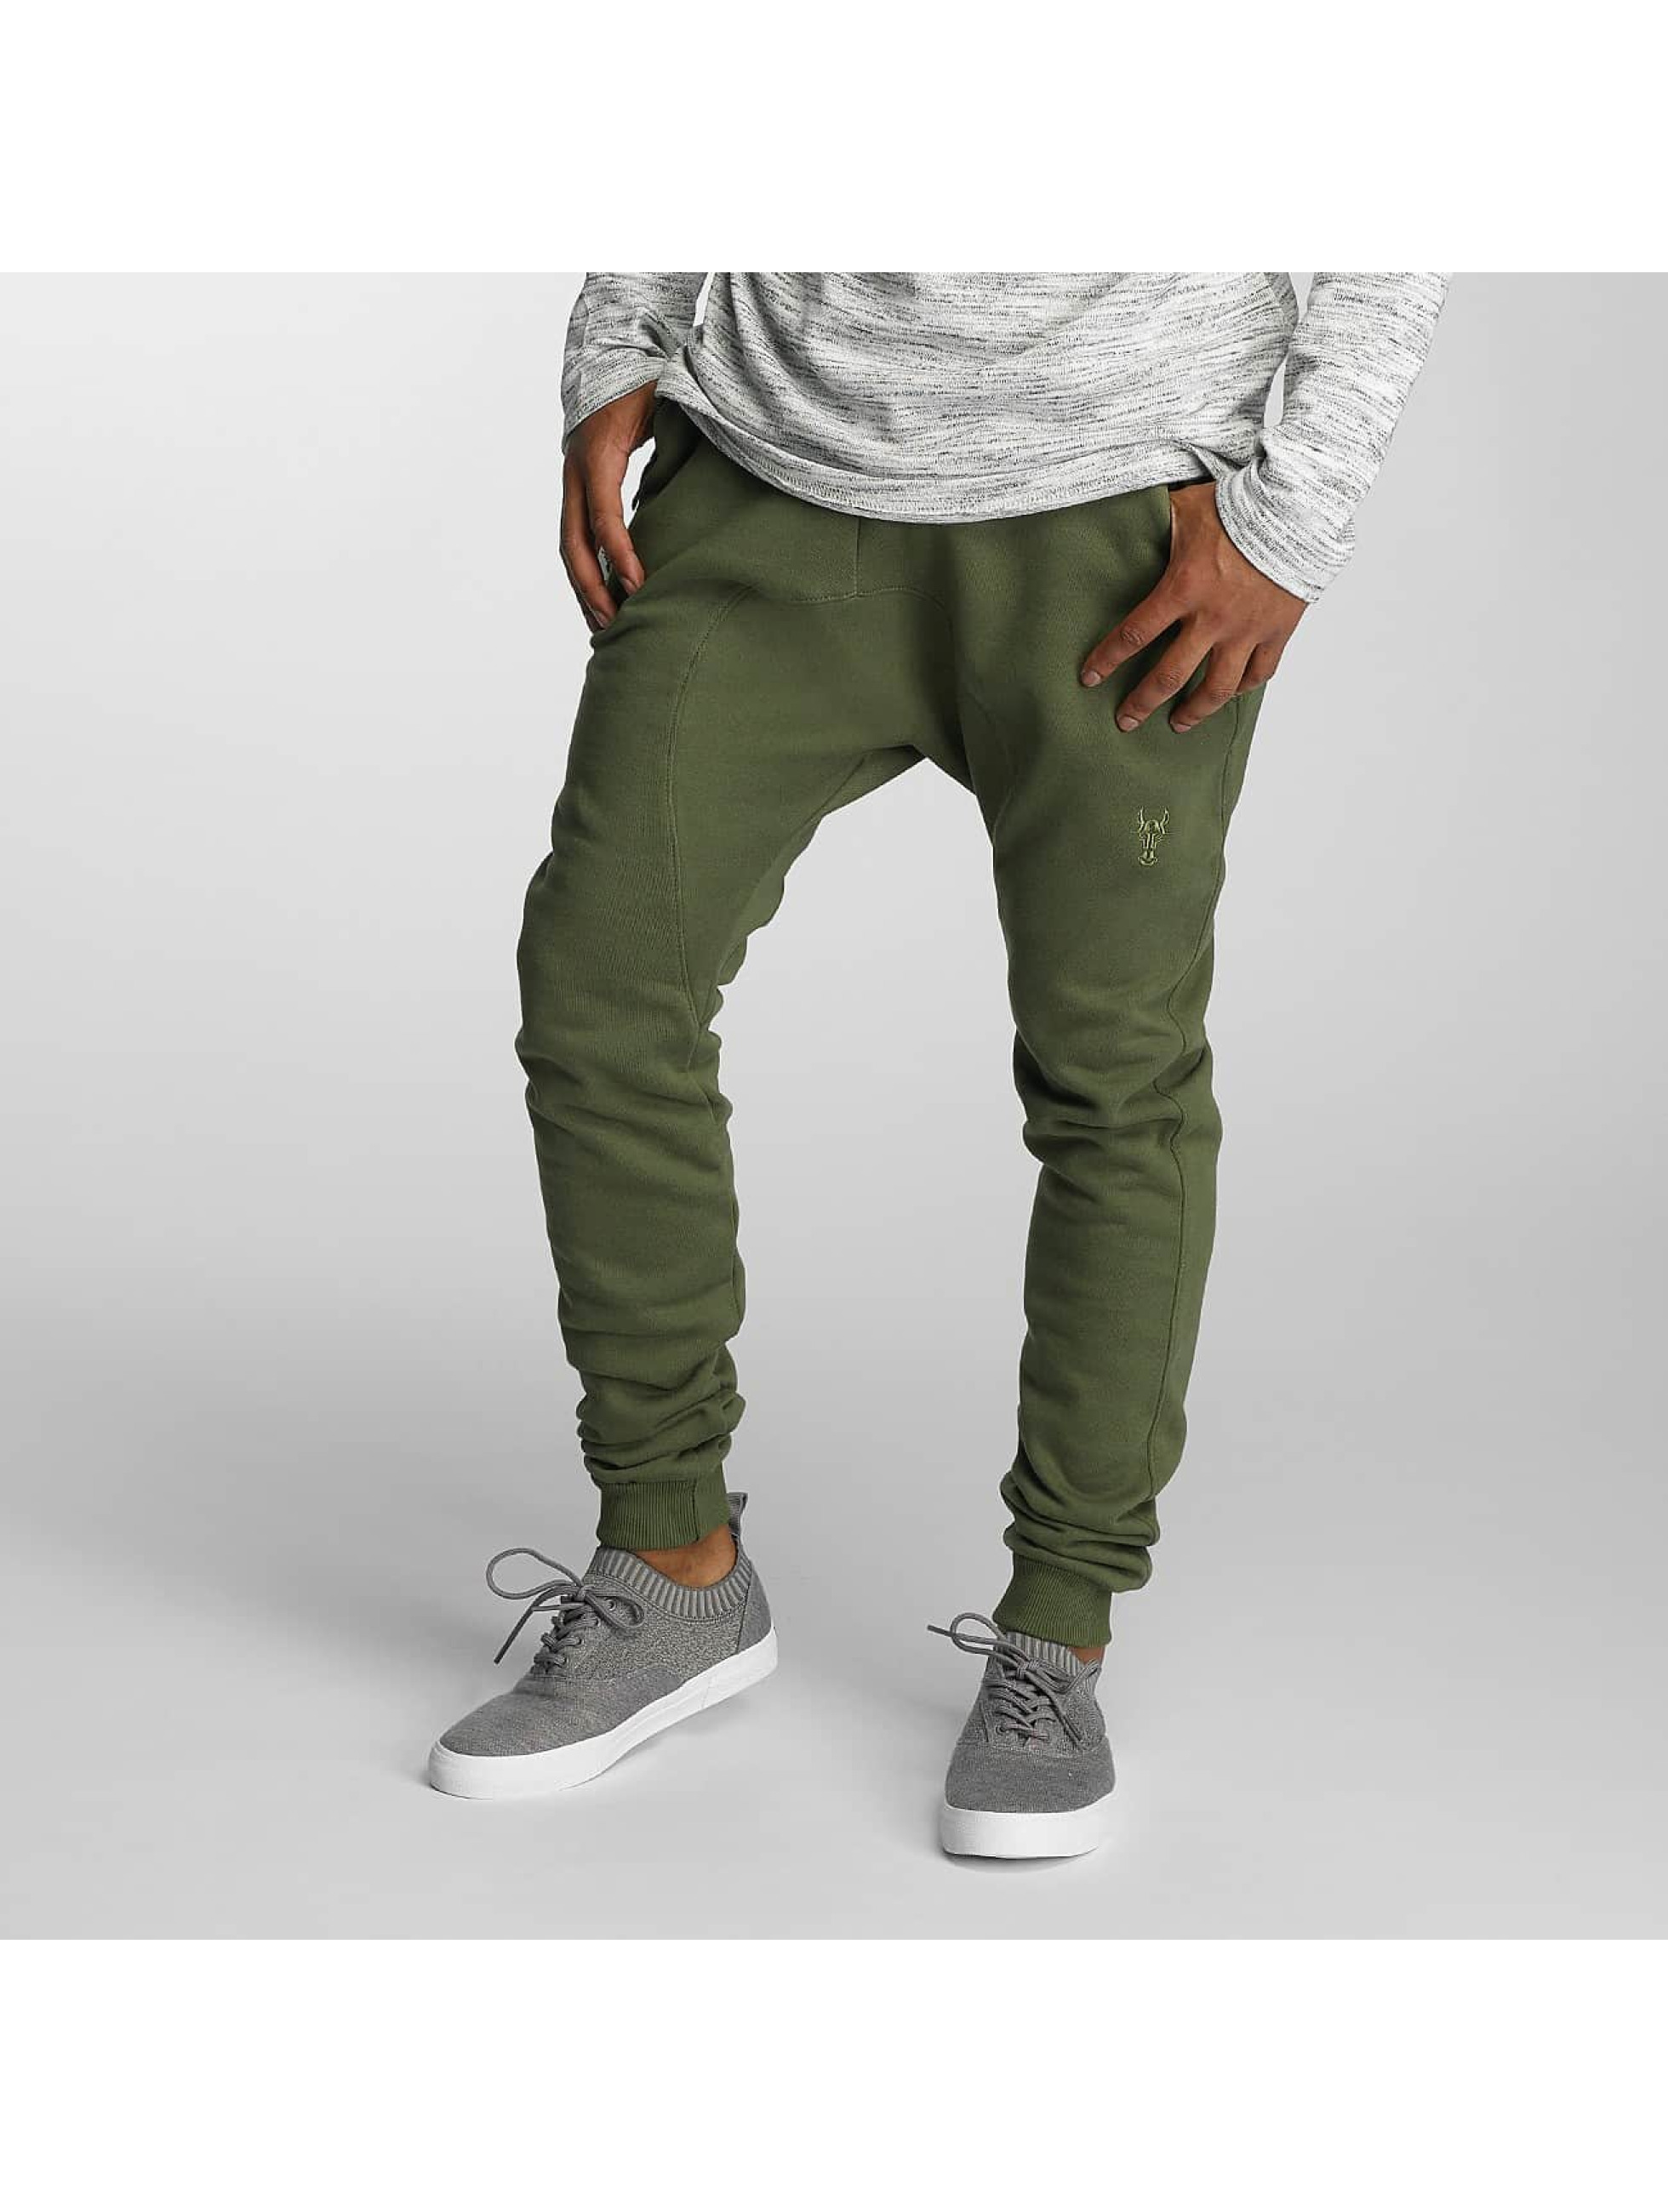 Cavallo de Ferro / Sweat Pant Abram in olive 2XL